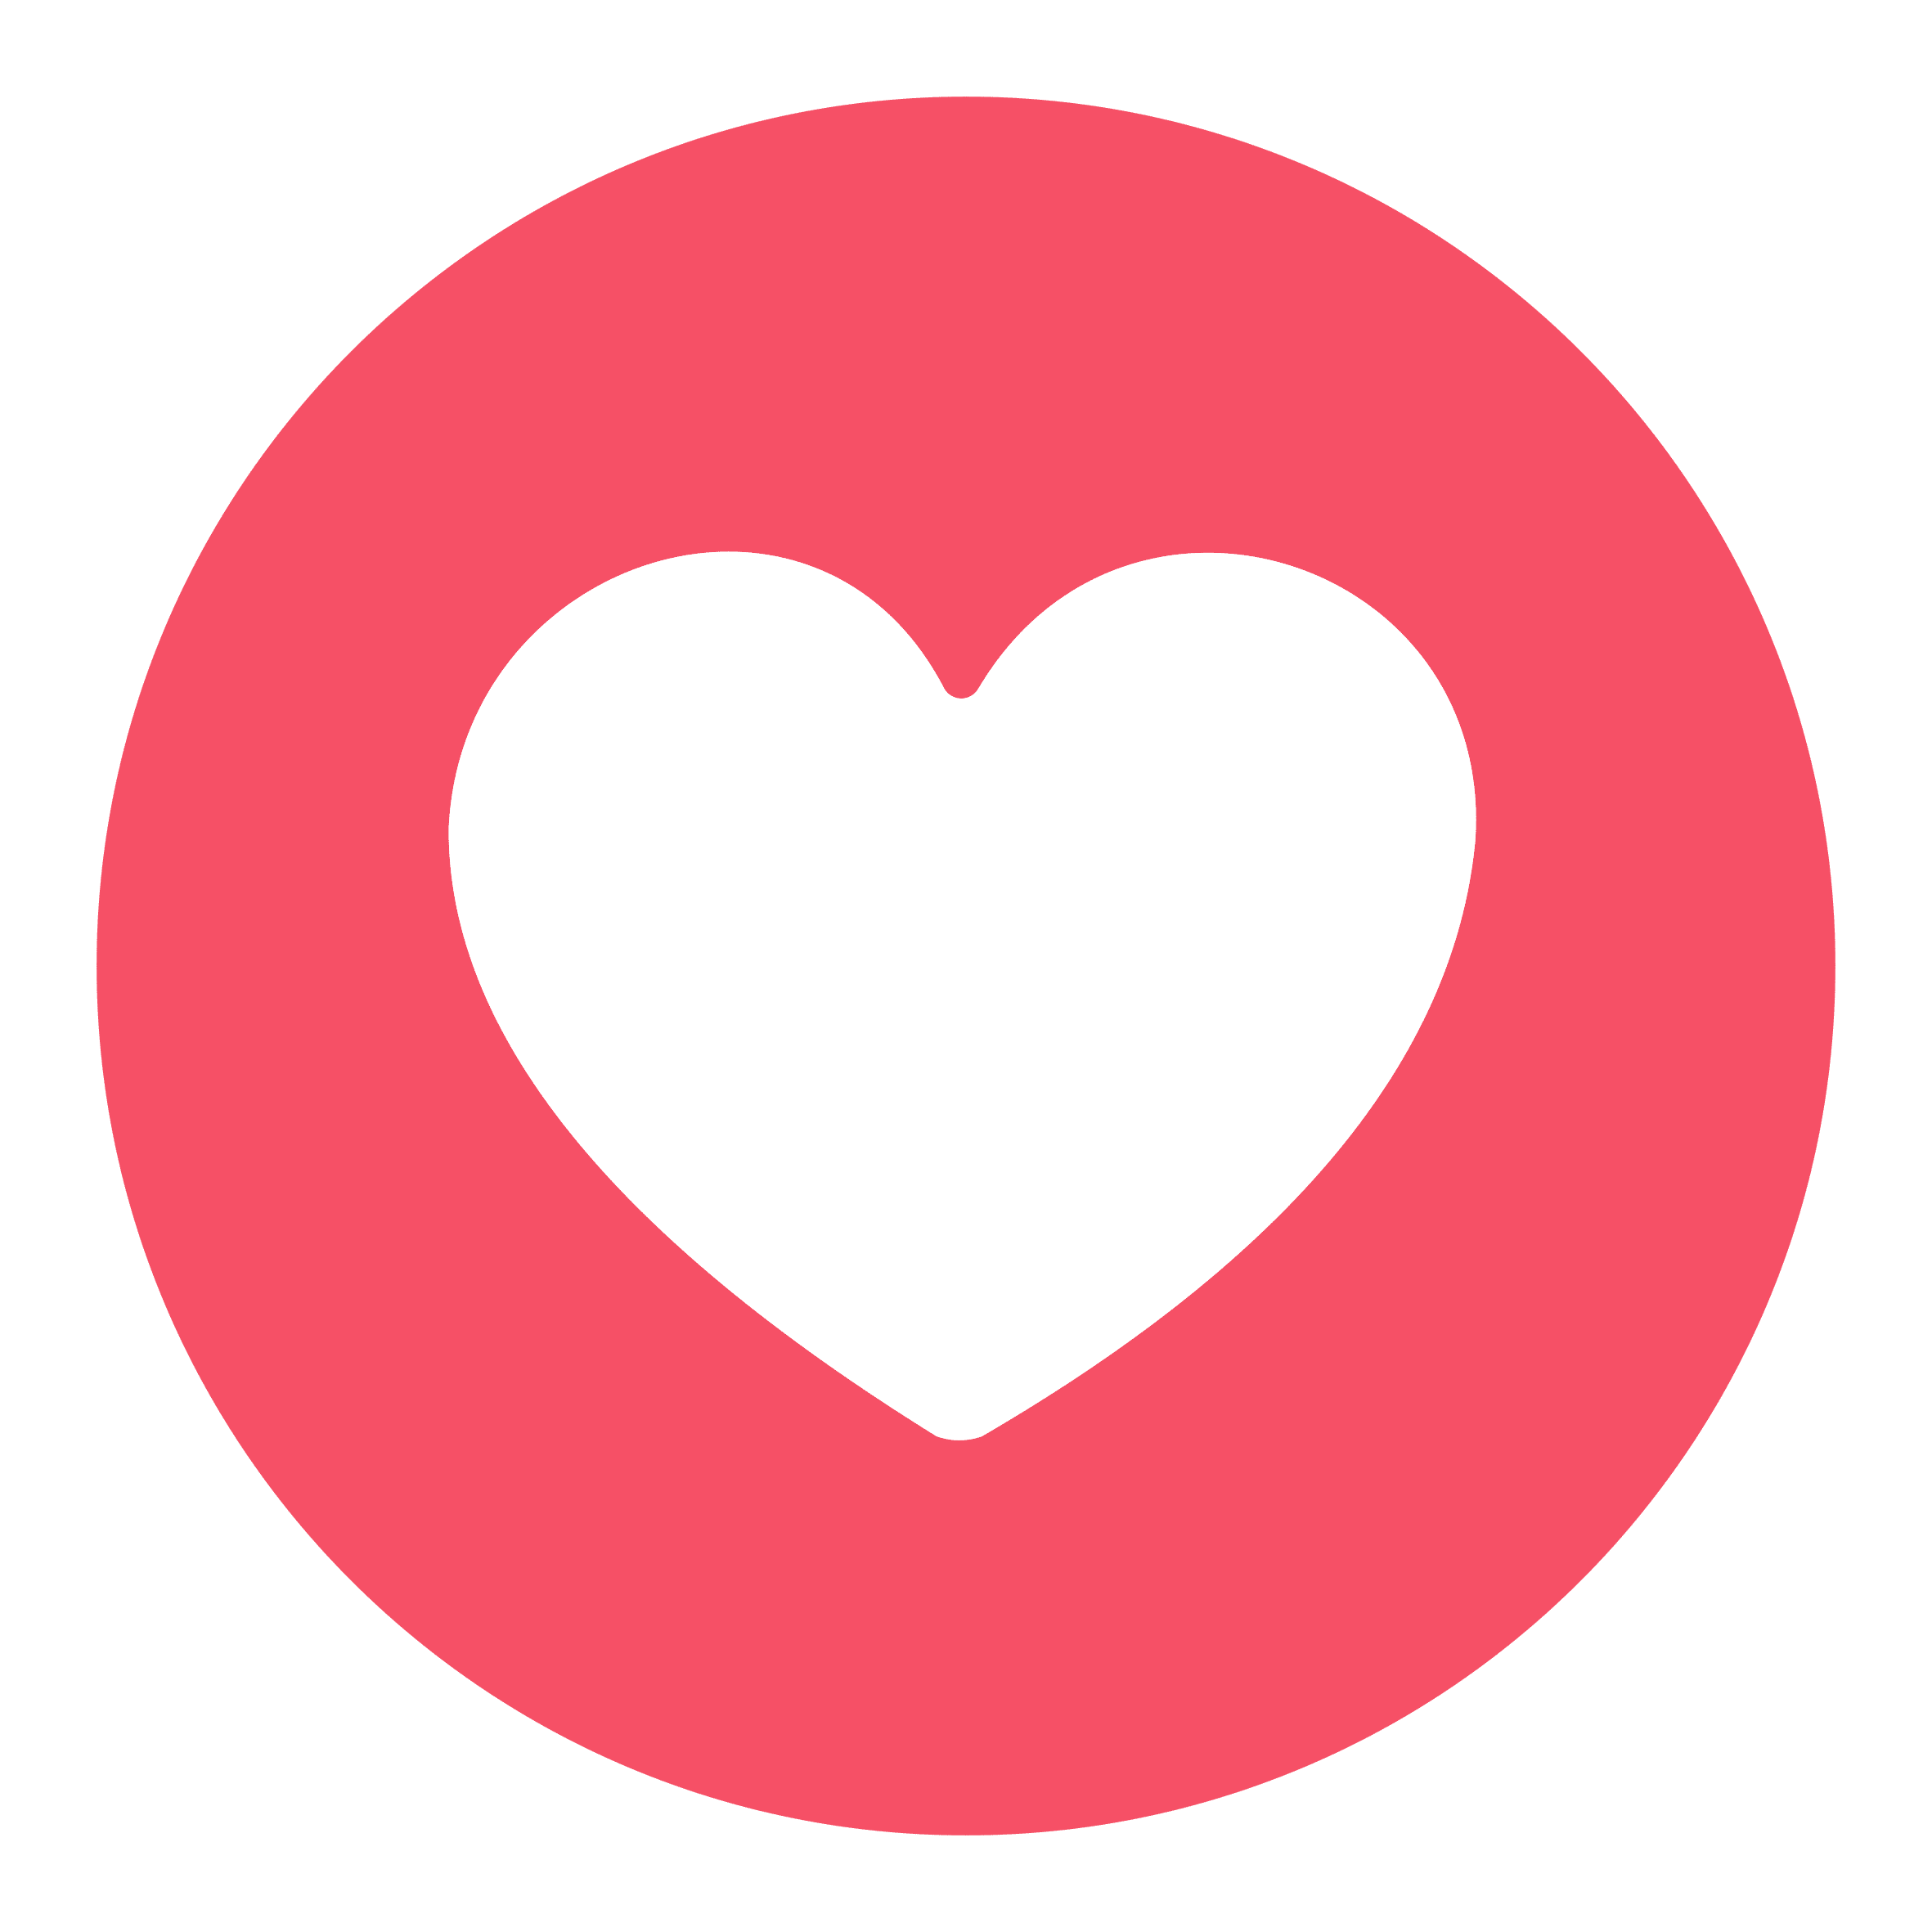 Heart circle clipart svg free download Facebook Circle Heart Love Png svg free download